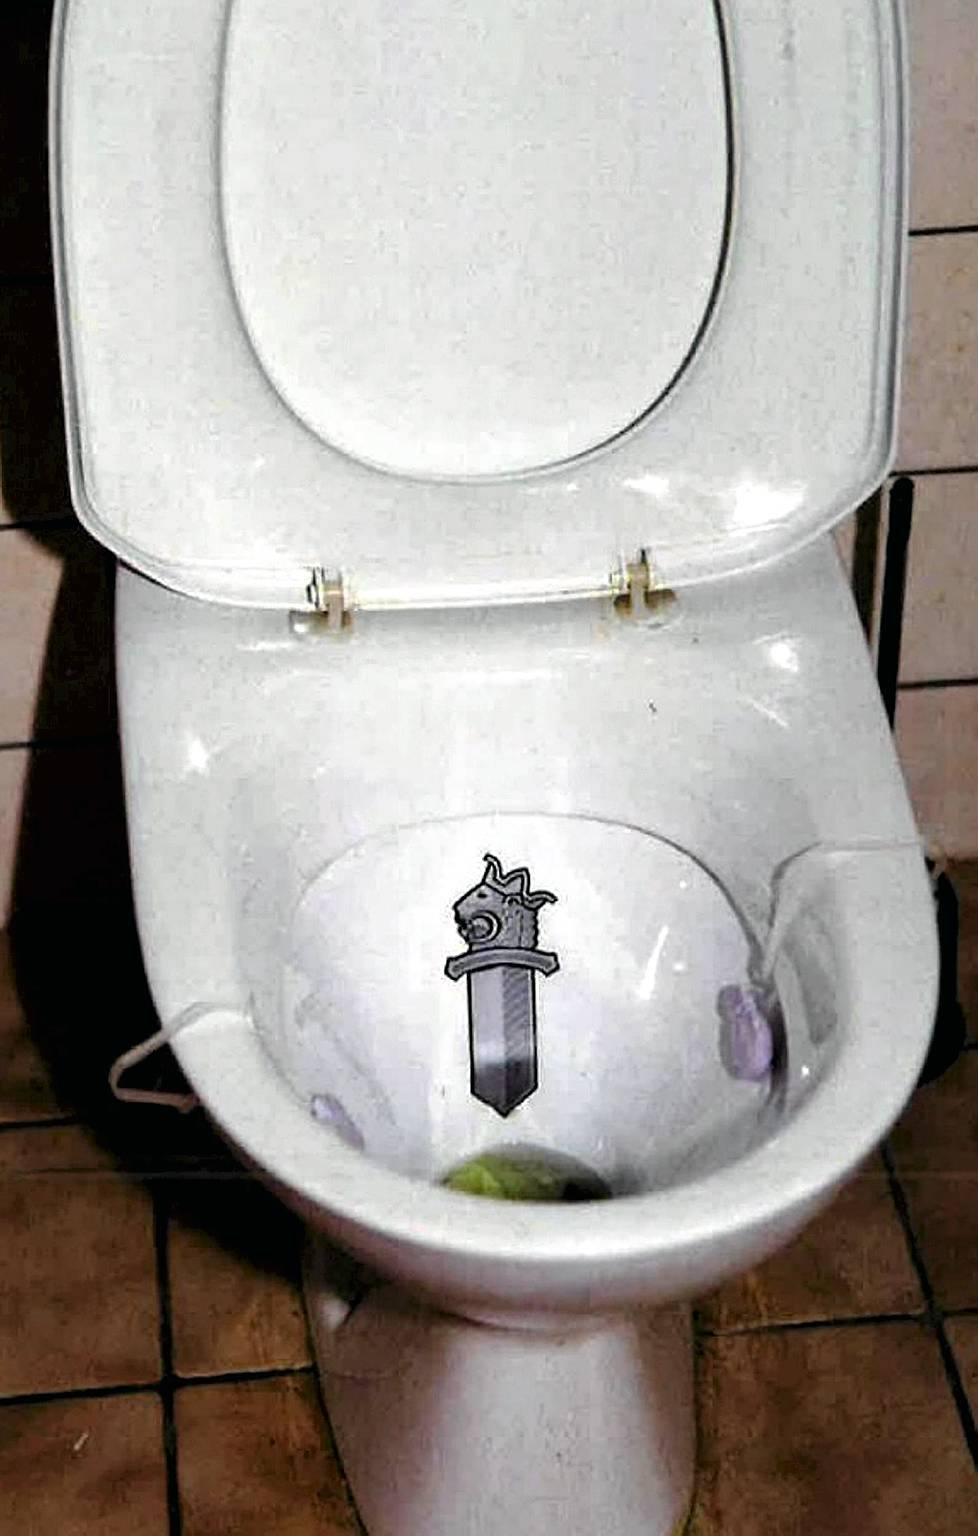 Hells Angels Club House Toilet Seat Decorated With Police